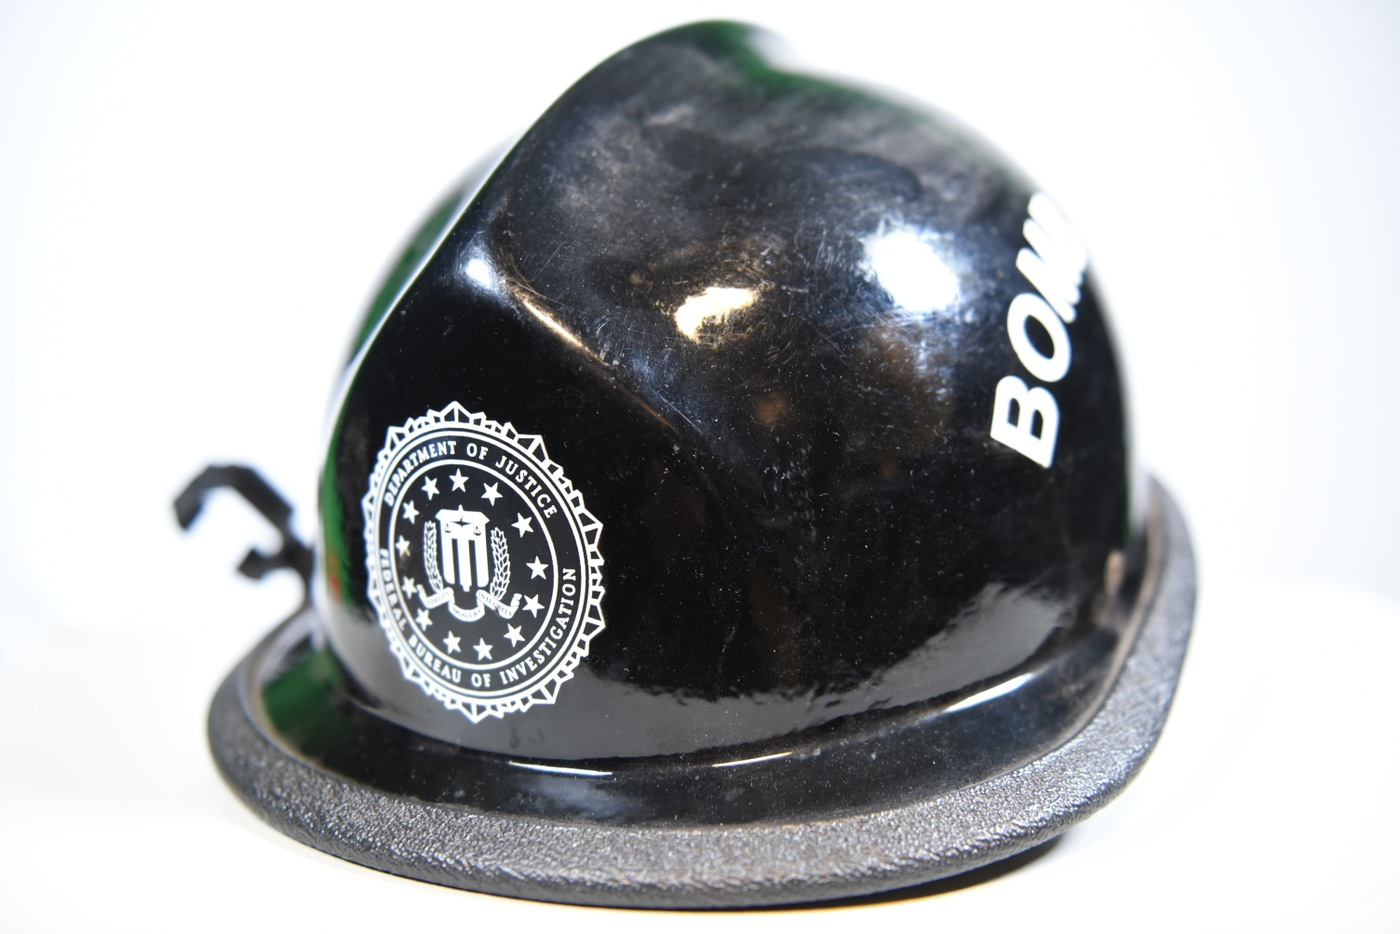 Hard hat worn by FBI Special Agent Black wore while gathering evidence at the scene of the 1995 Oklahoma City Bombing.